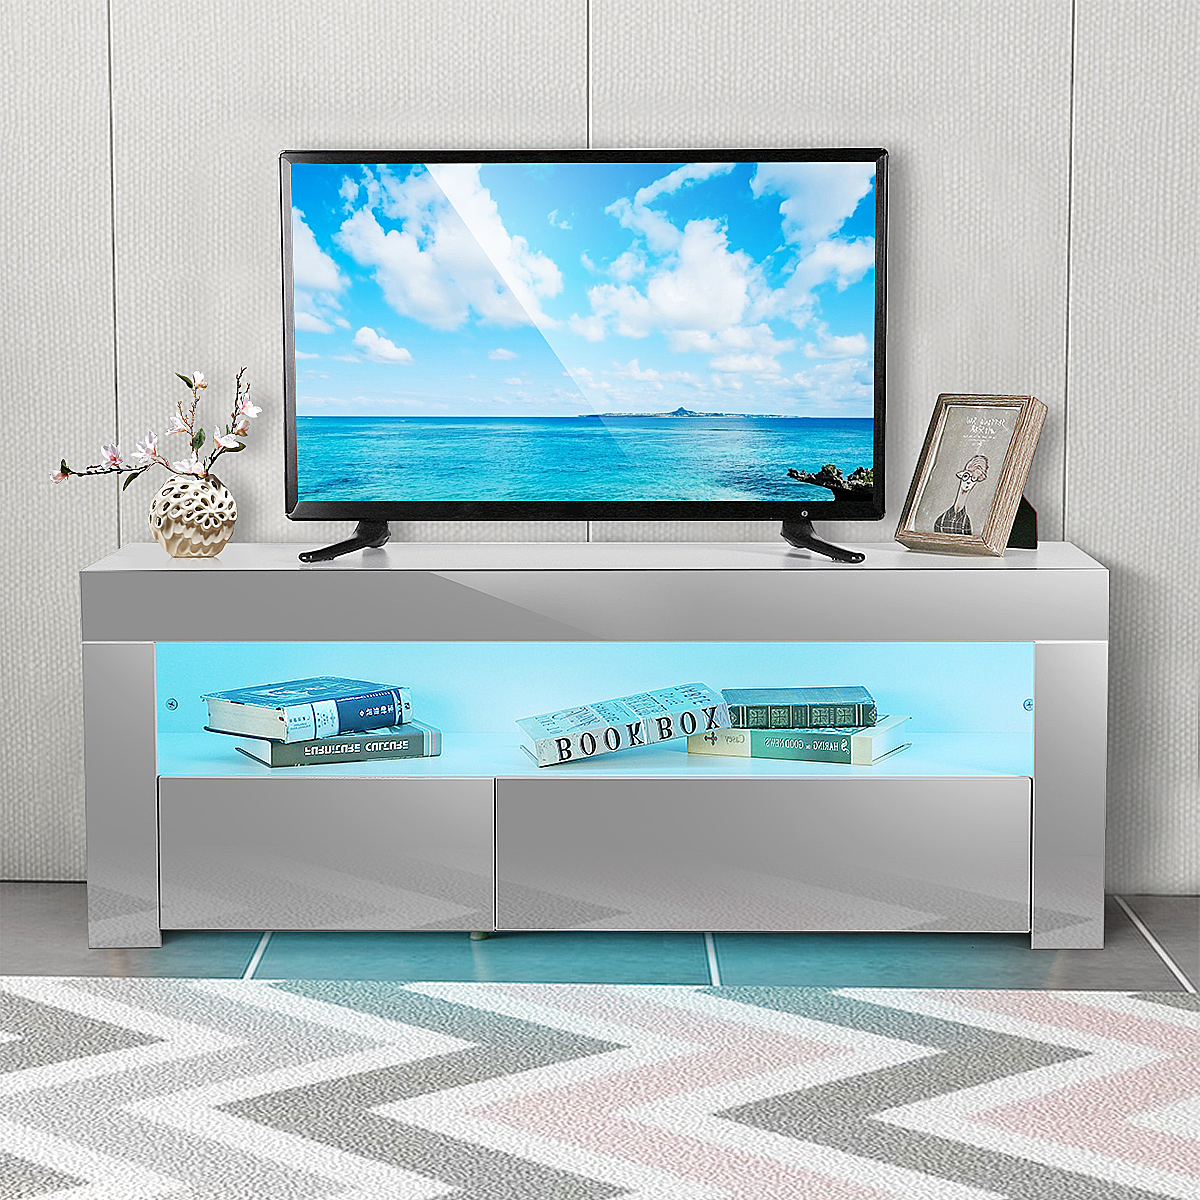 """47"""" Tv Stand High Gloss Tv Cabinet, With 16 Color Leds, 2 Regarding Spellman Tv Stands For Tvs Up To 55"""" (View 16 of 20)"""